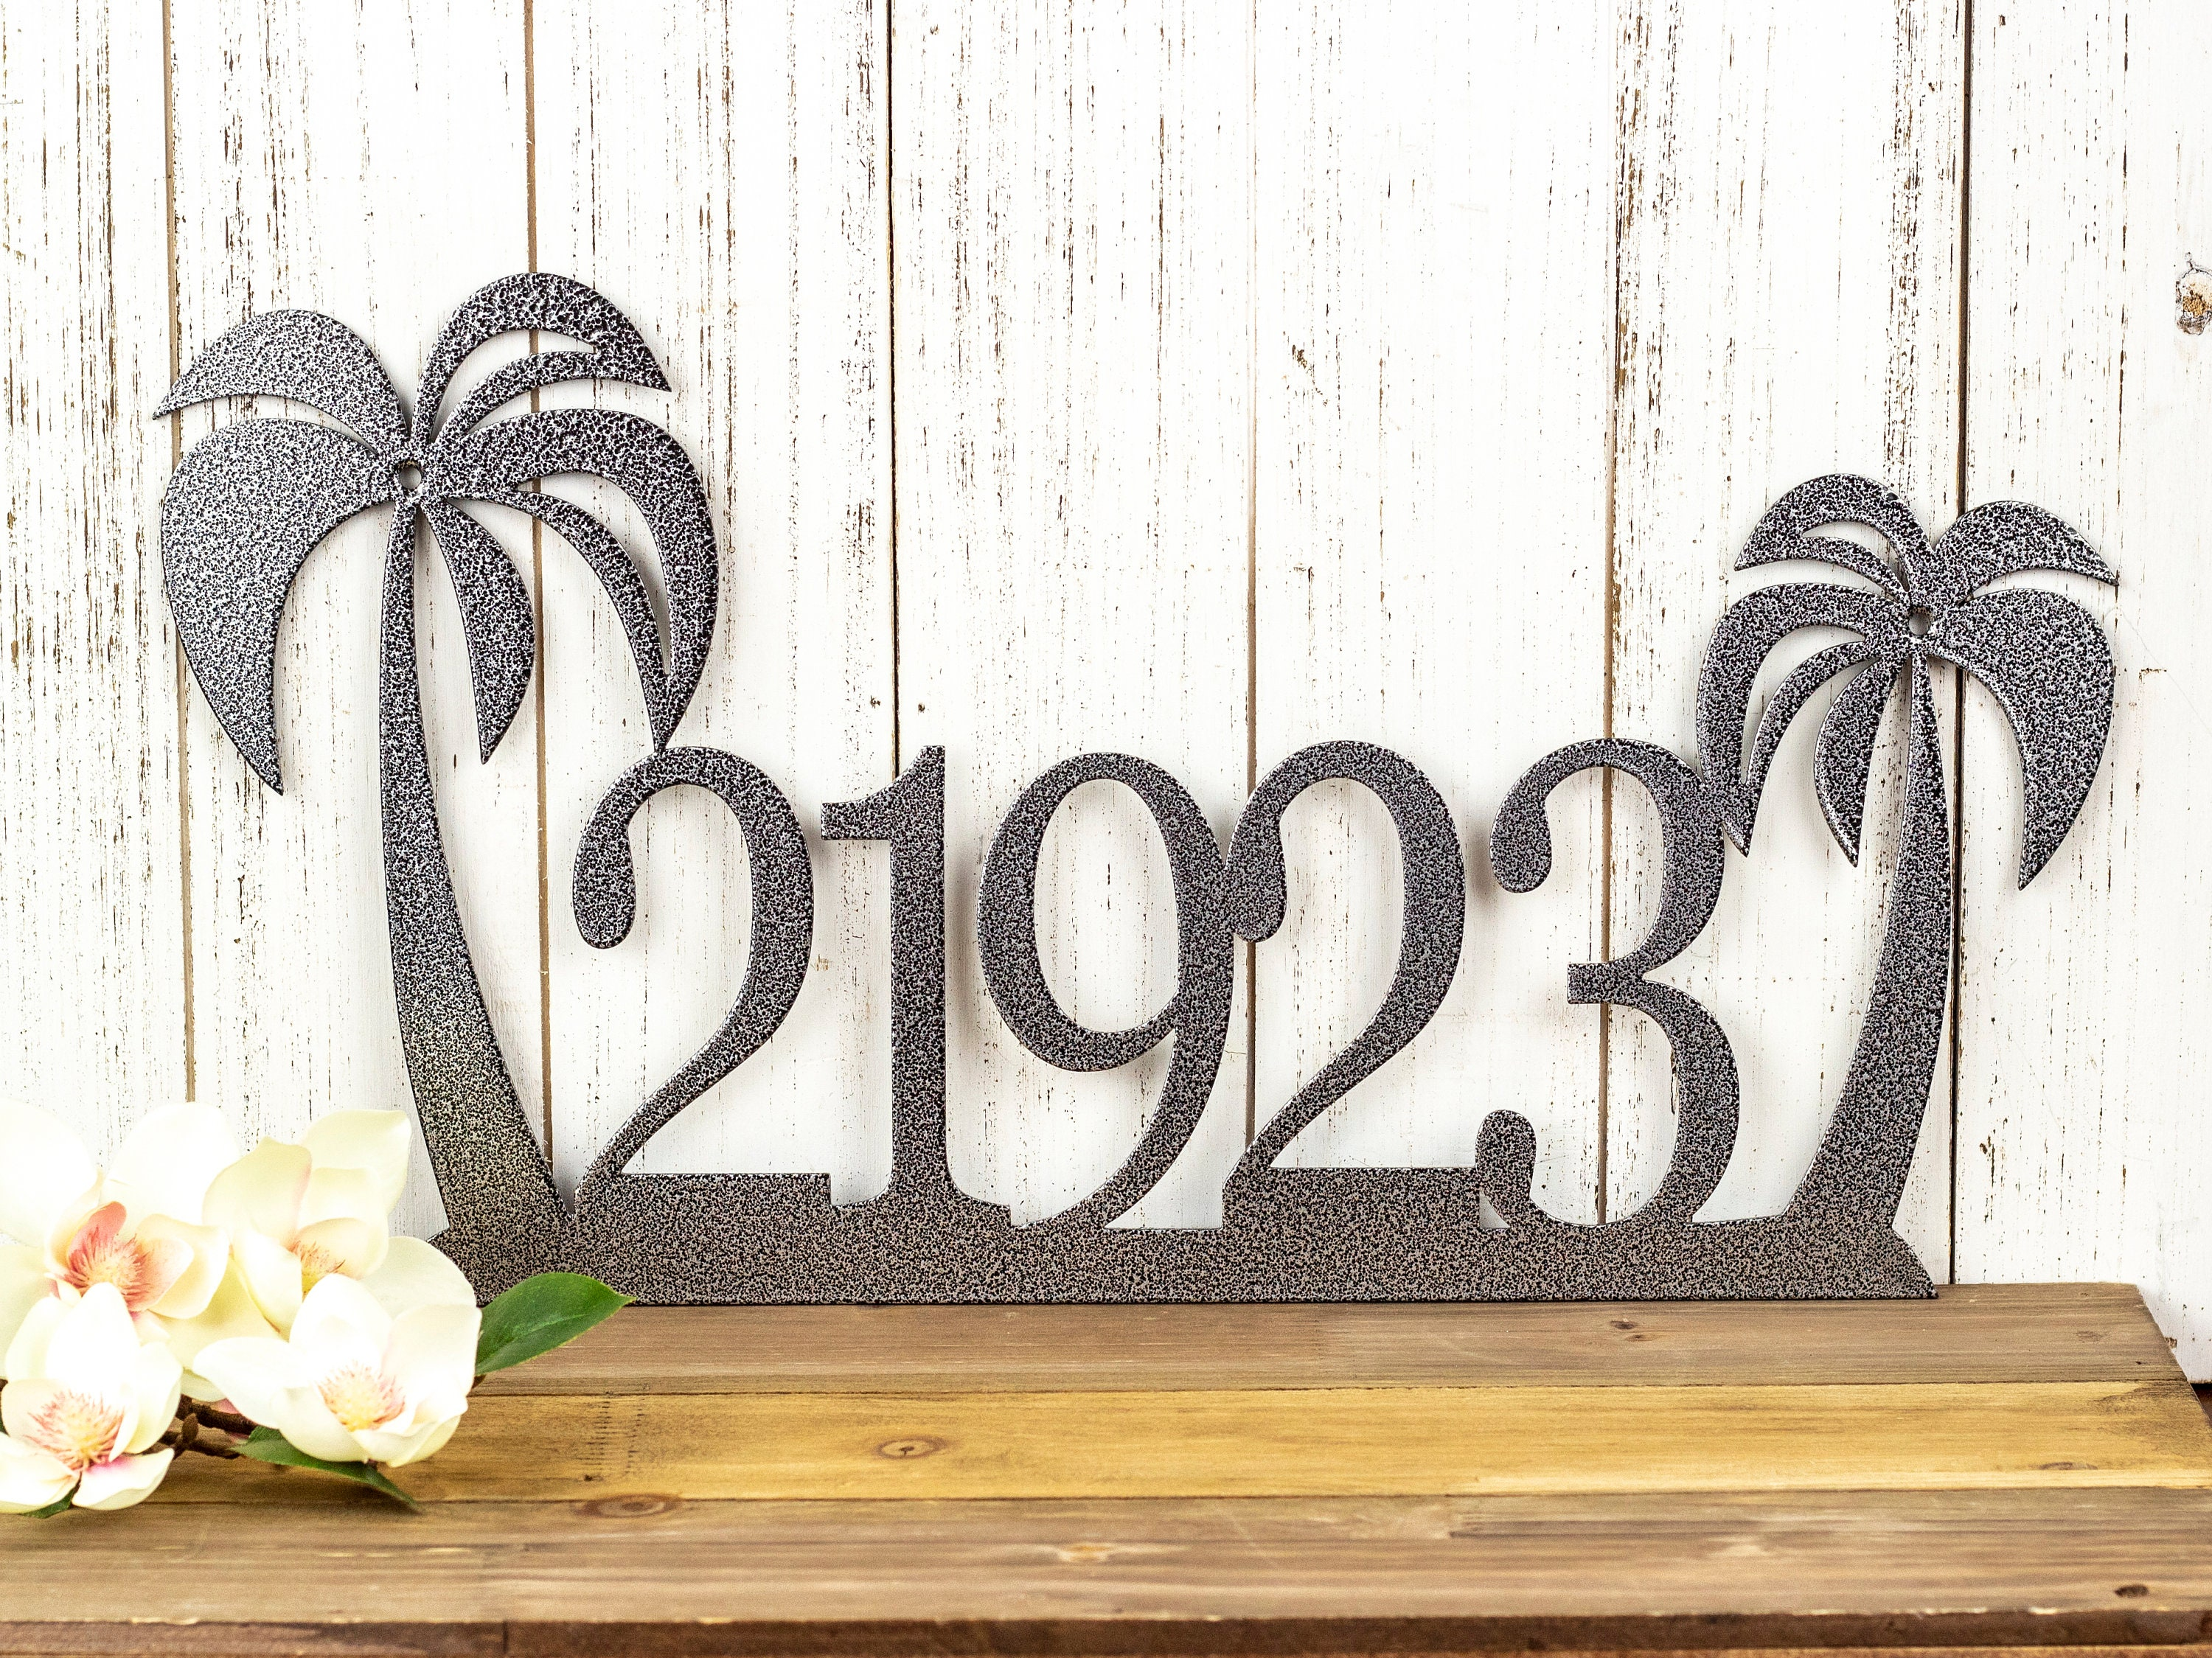 Art Décor: House Number Palm Tree Metal Sign, Outdoor Address Plaque